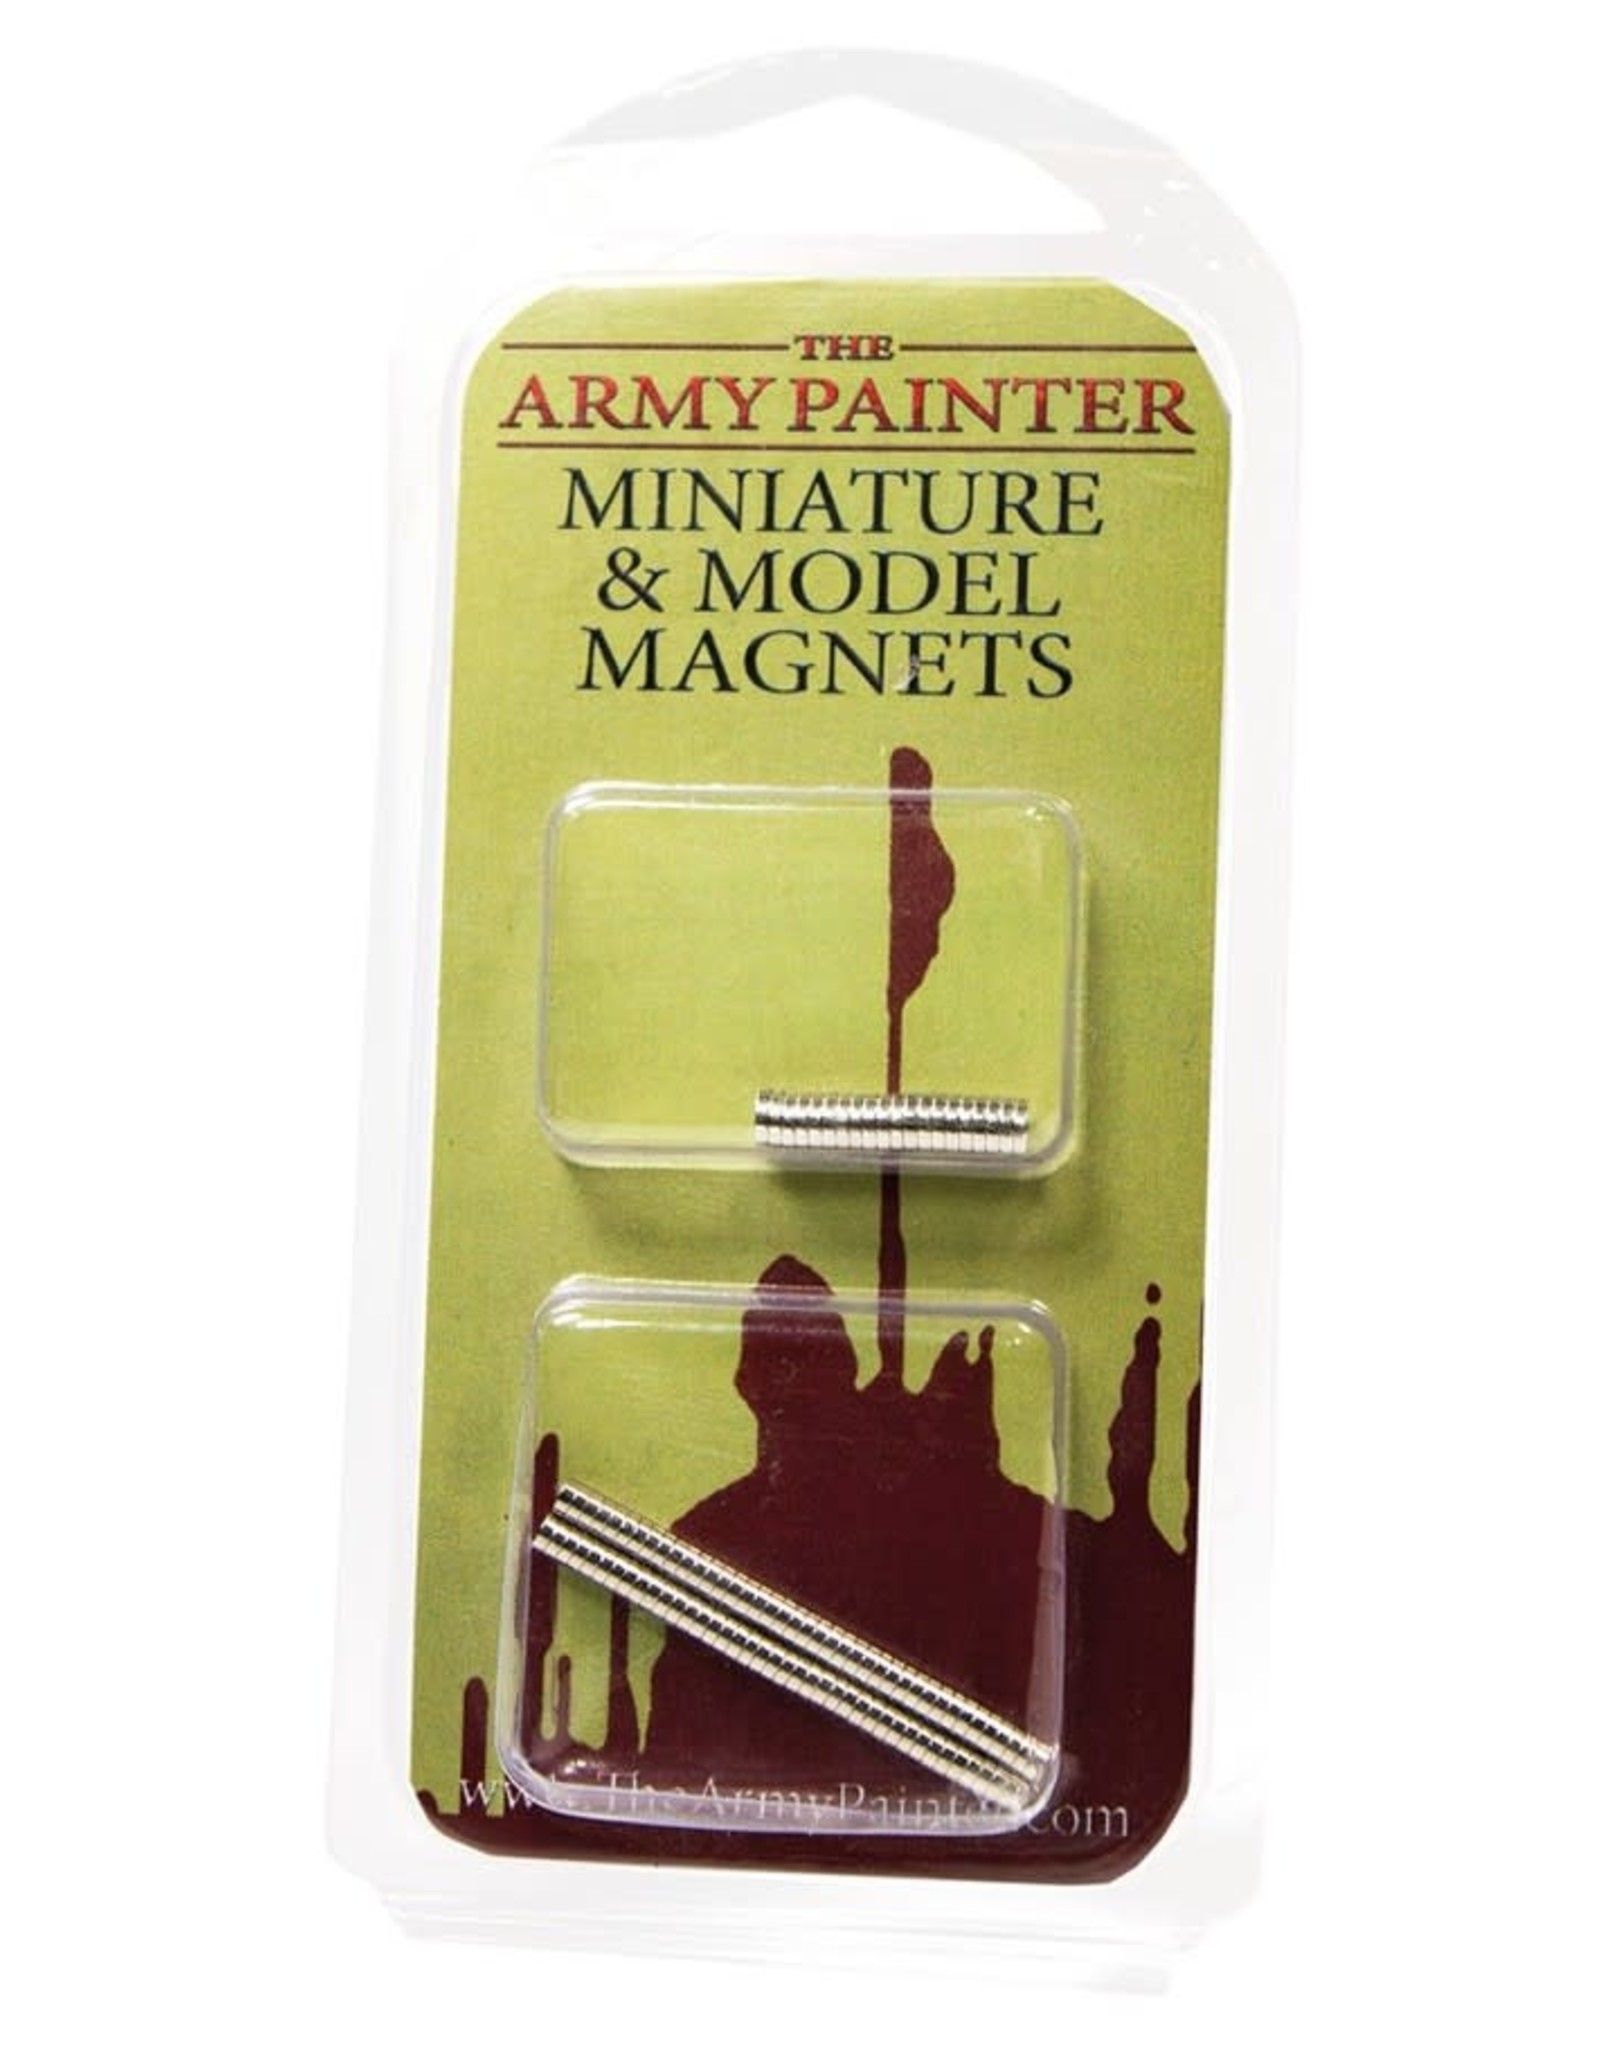 Tools: Miniature & Model Magnets